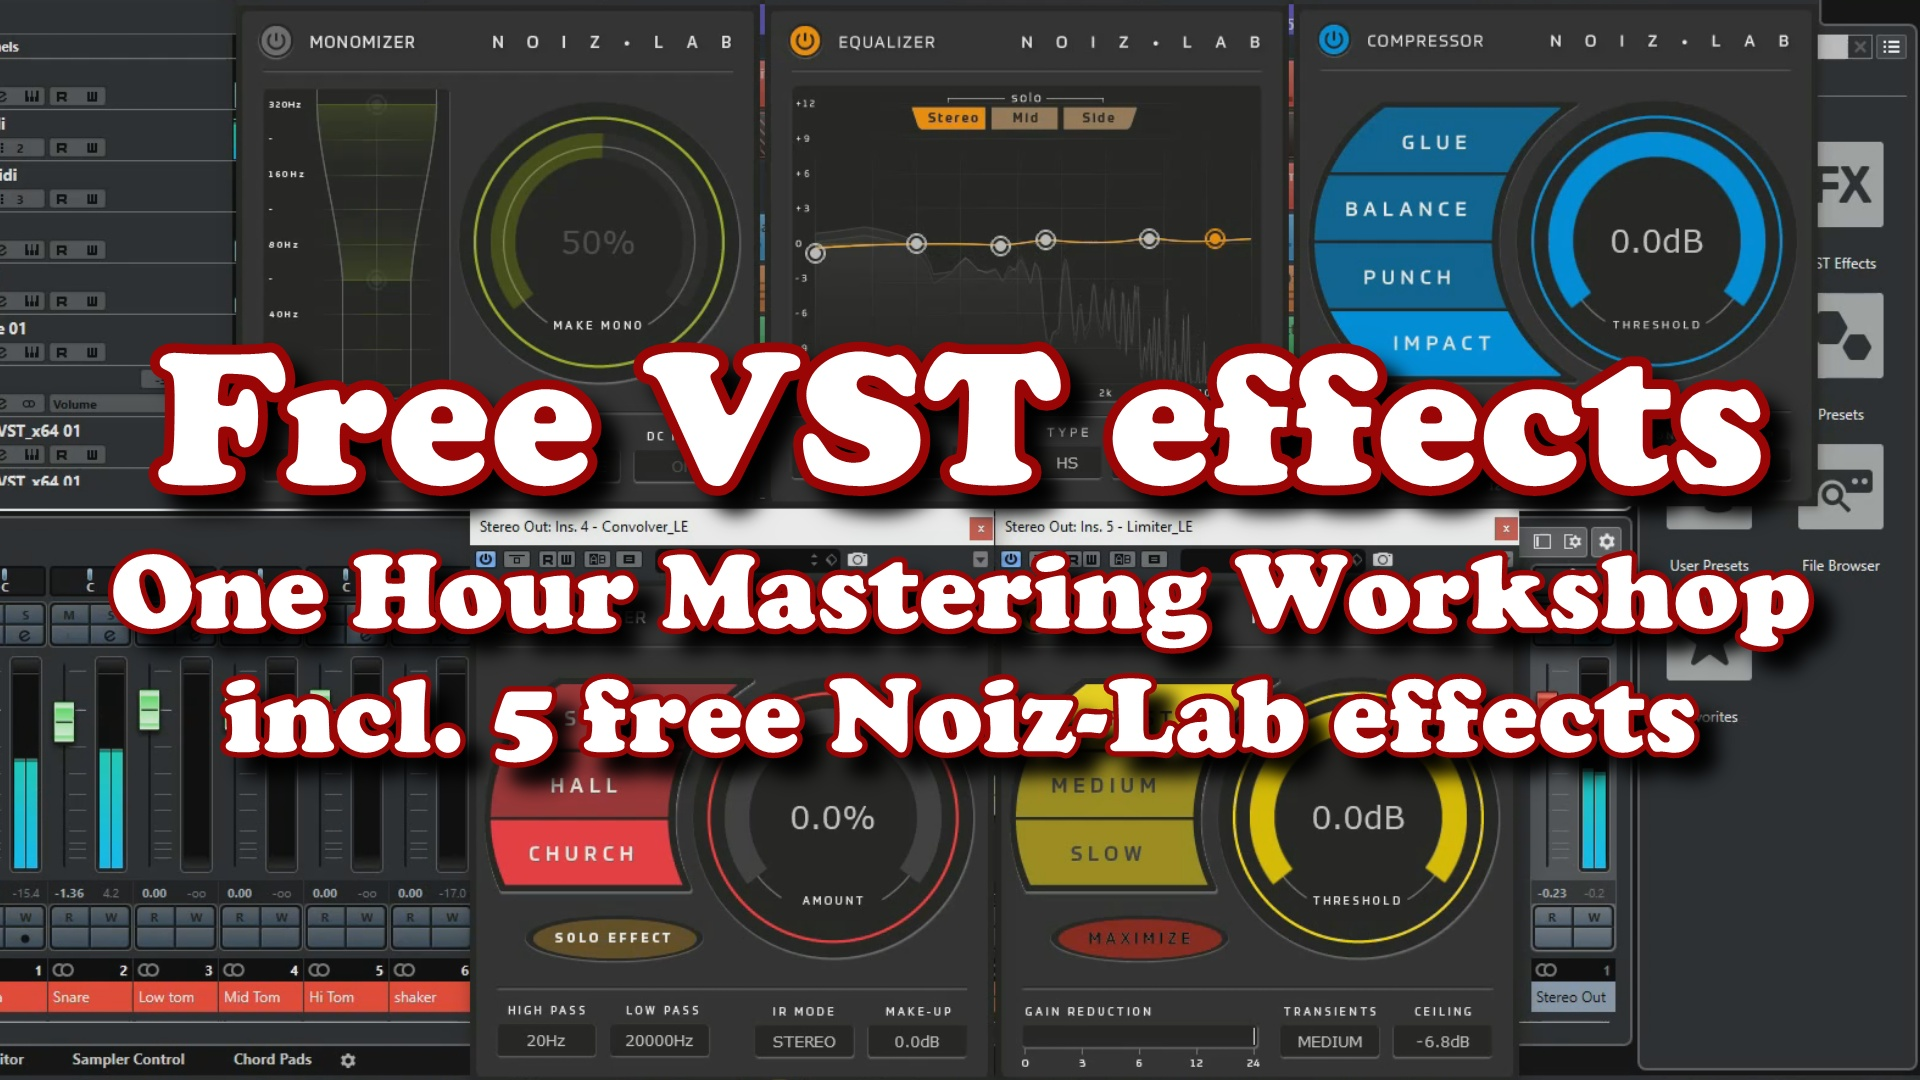 The One Hour Mastering Workshop